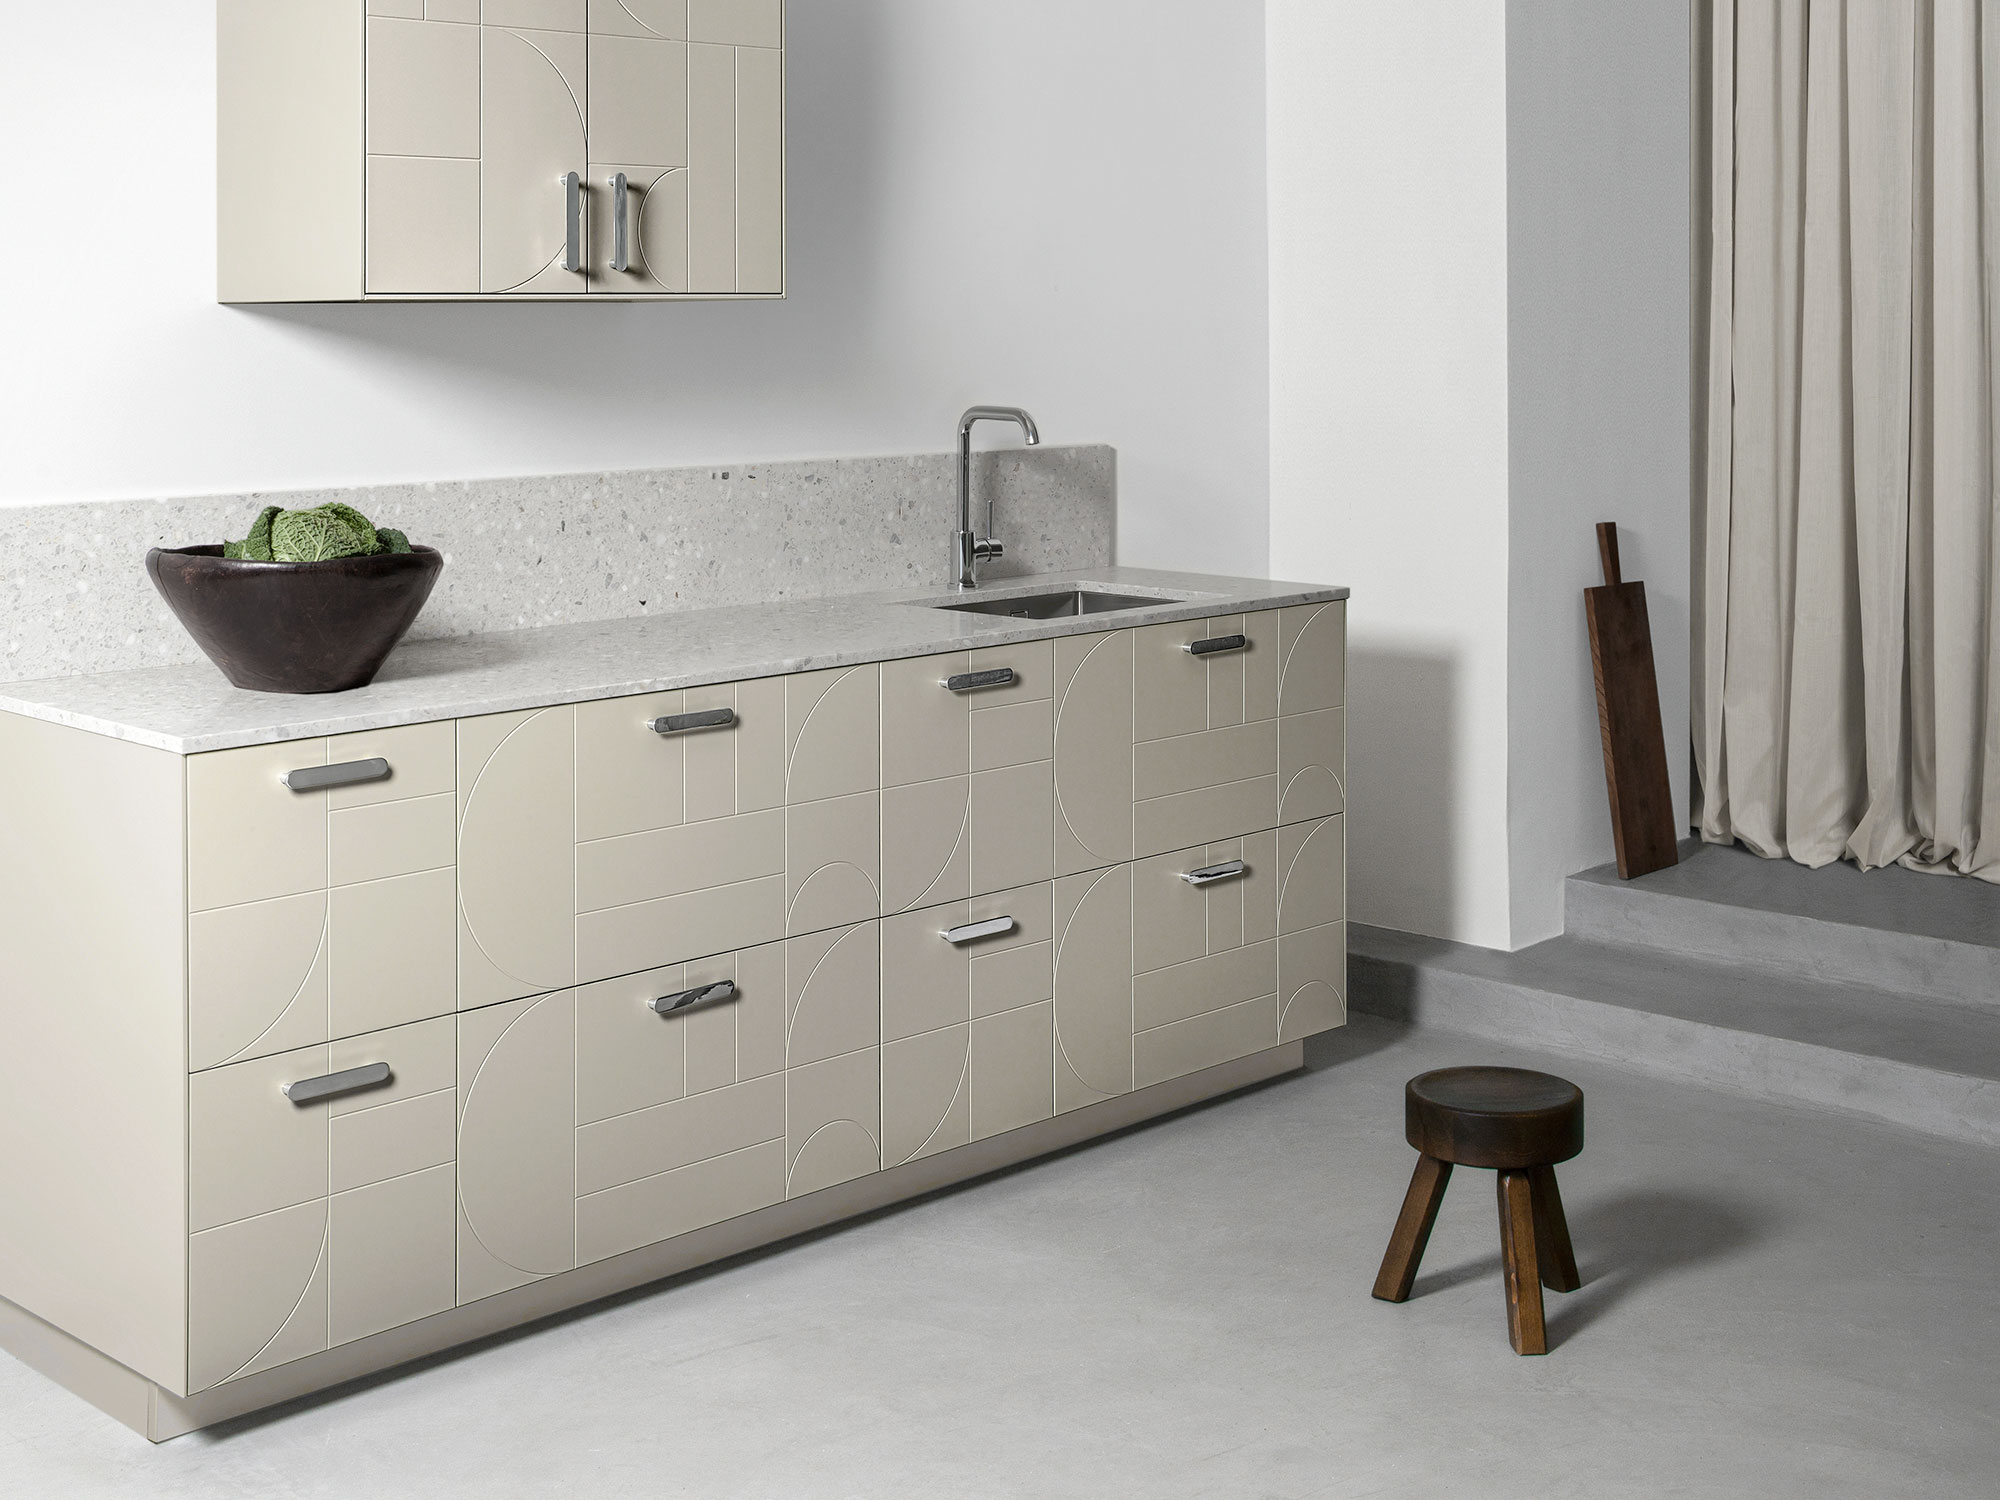 Ikea Küche L Form New Kitchen Interior | Remodel Your Ikea Kitchen | Superfront